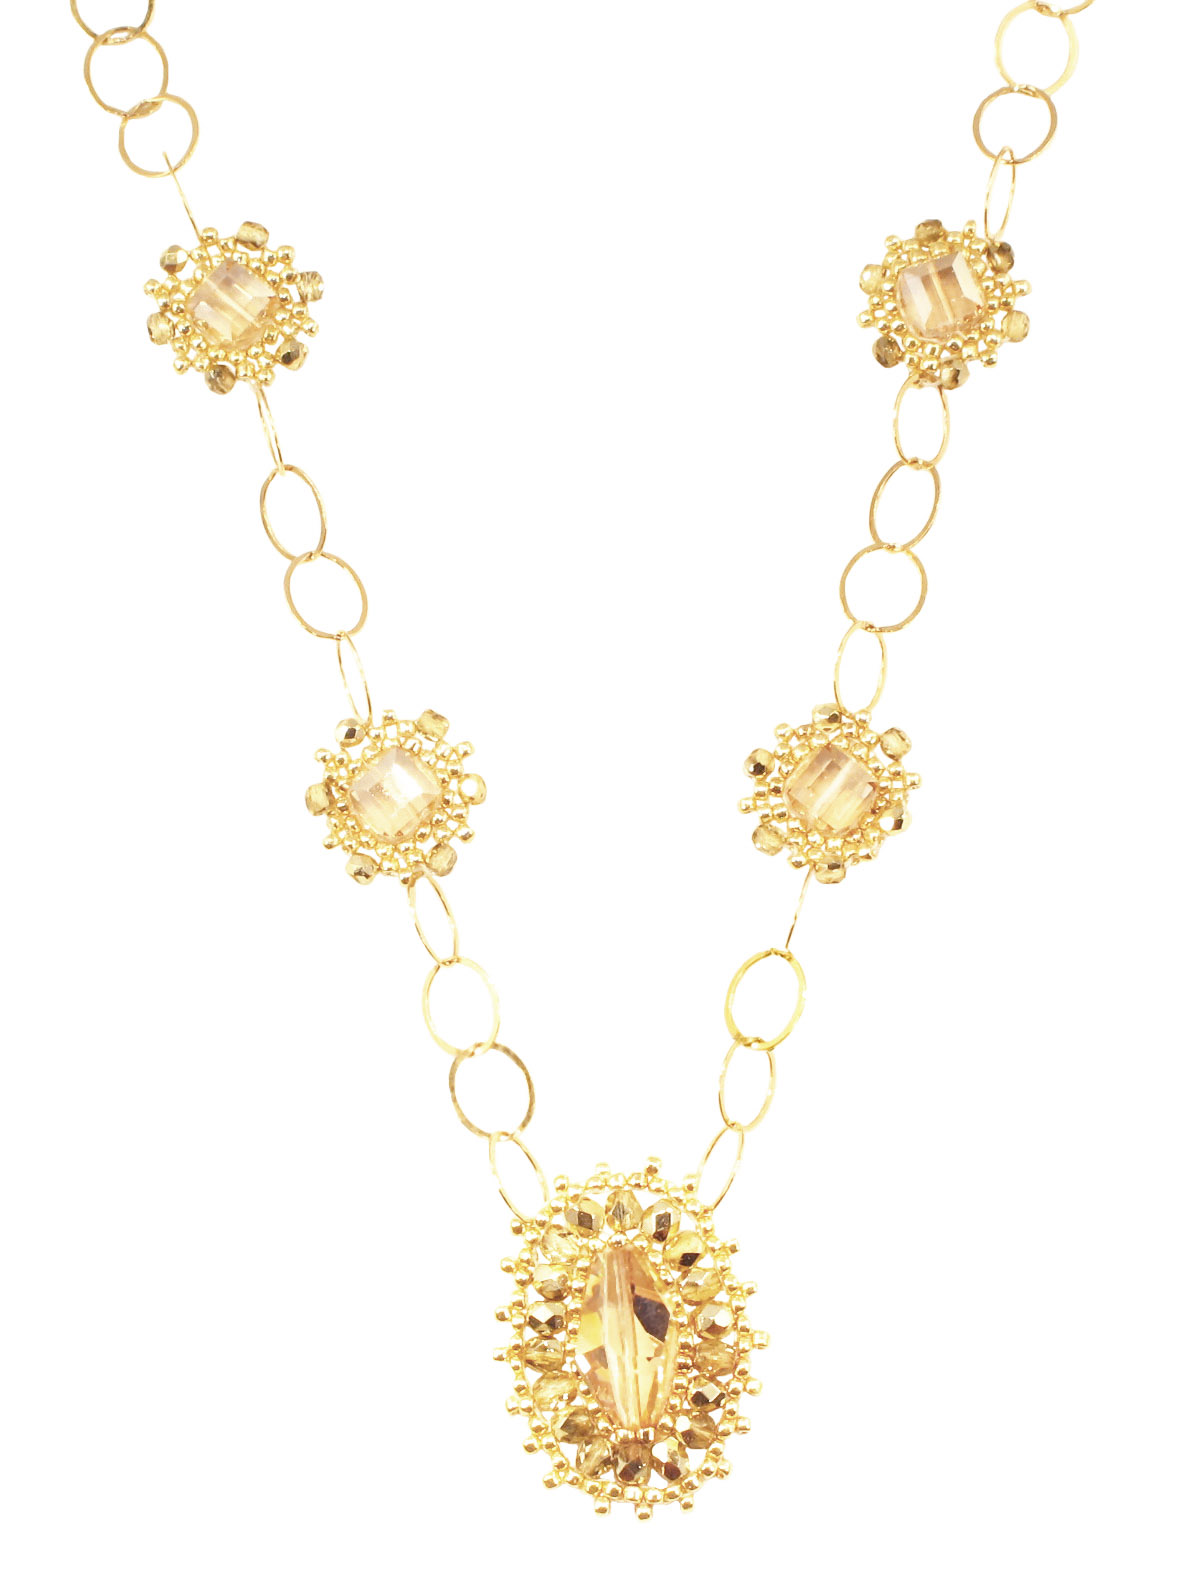 SWAROVSKI CRYSTAL AND GOLD FILLED NECKLACE